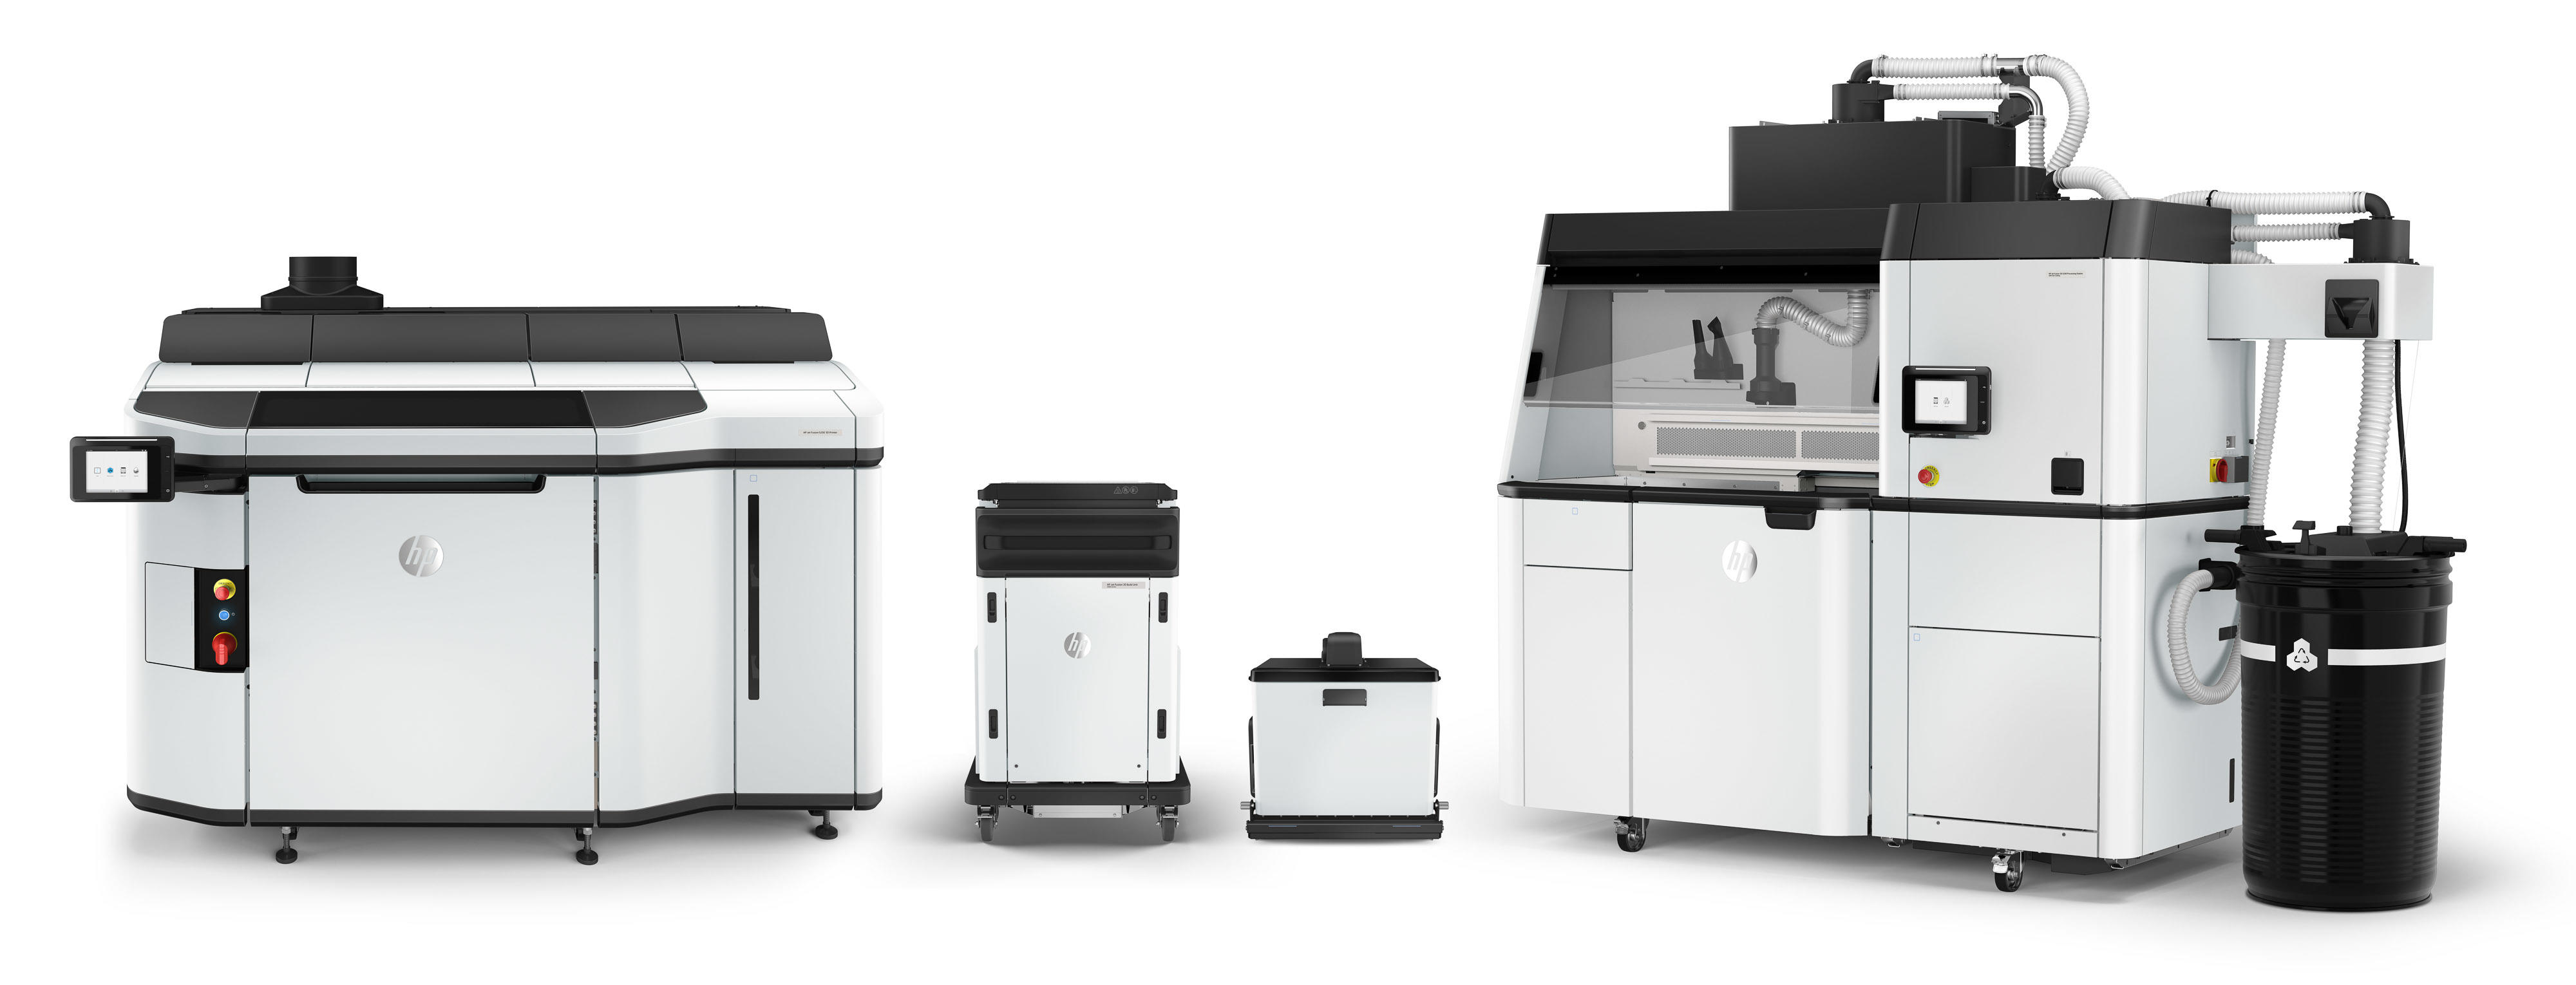 The HP Jet Fusion 5200 3D printing system won't fit on your desk.